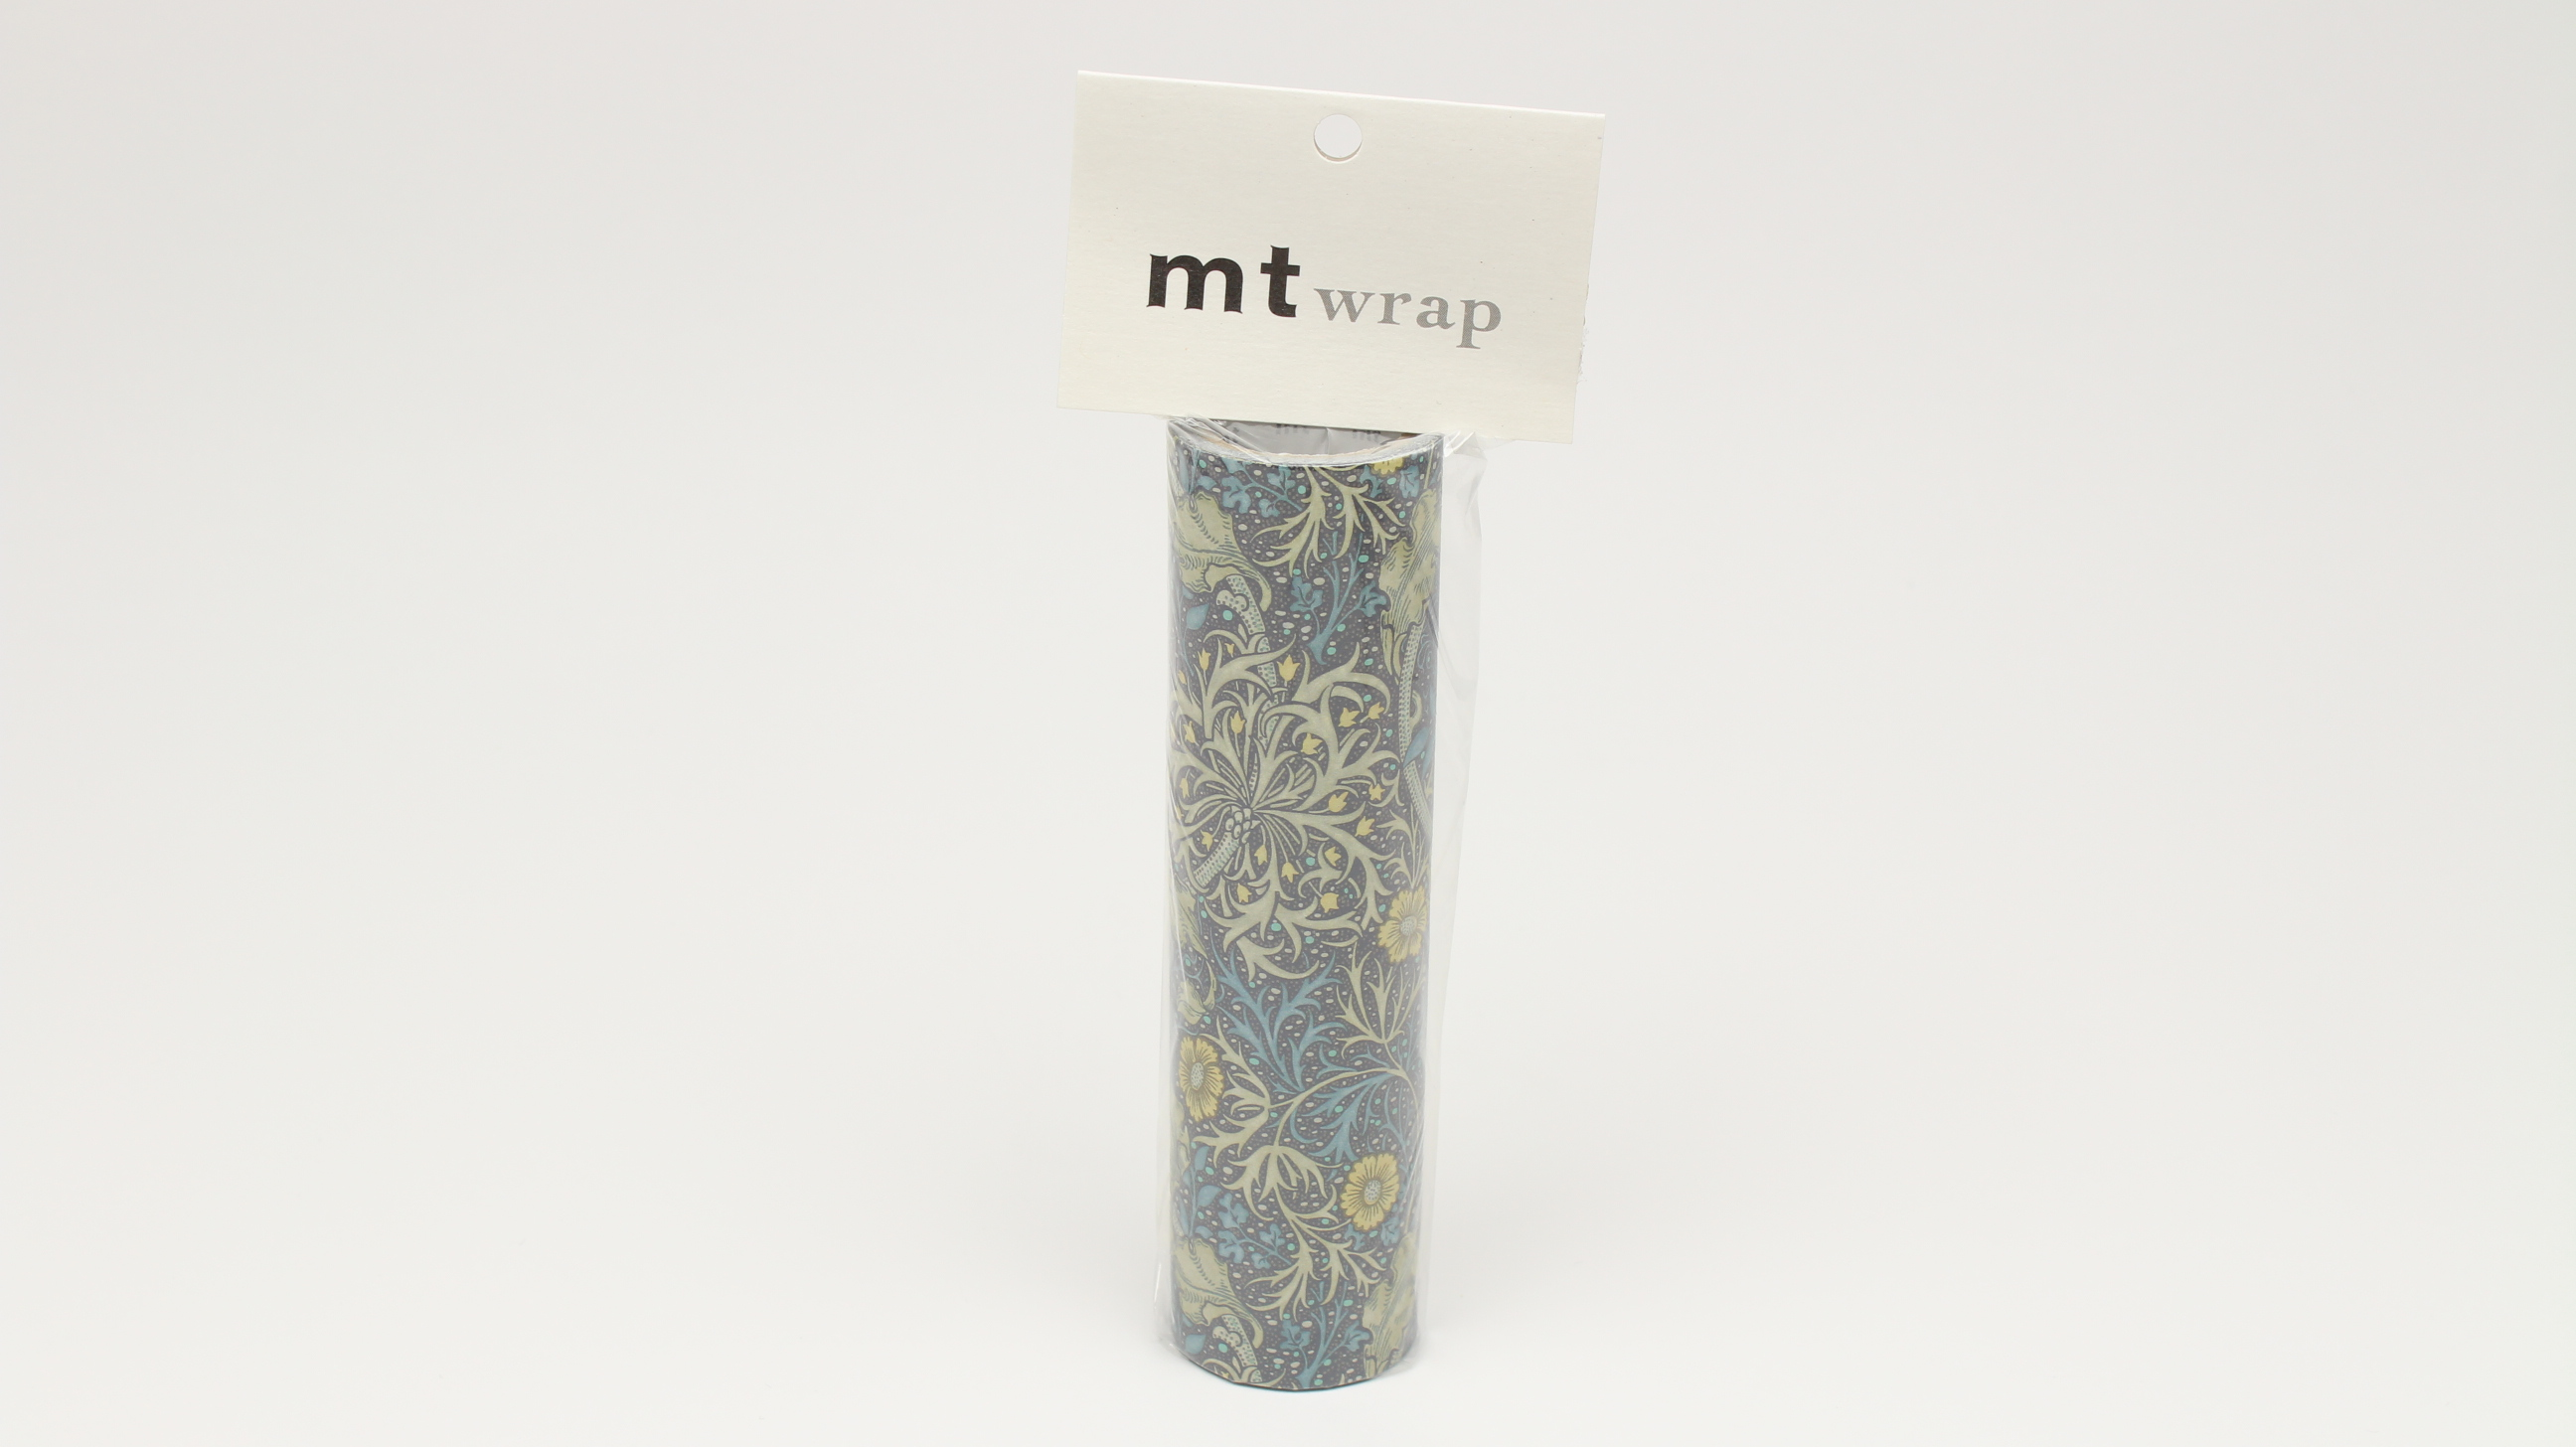 mt wrap S 詰替 William Morris Seaweed